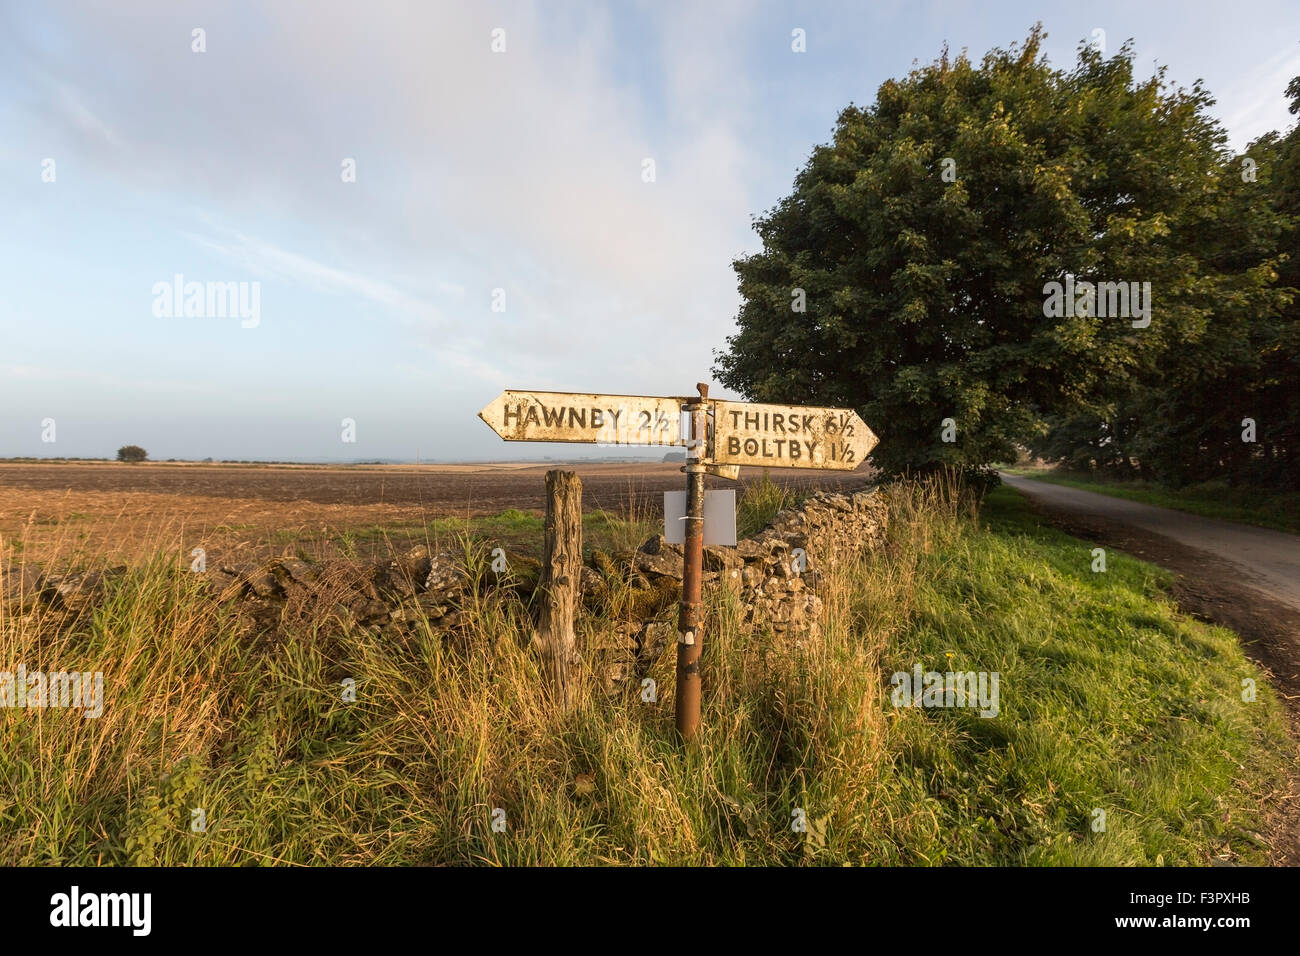 Sign in a rural road in  near Snilesworth, Northallerton, North Yorkshire UK - Stock Image